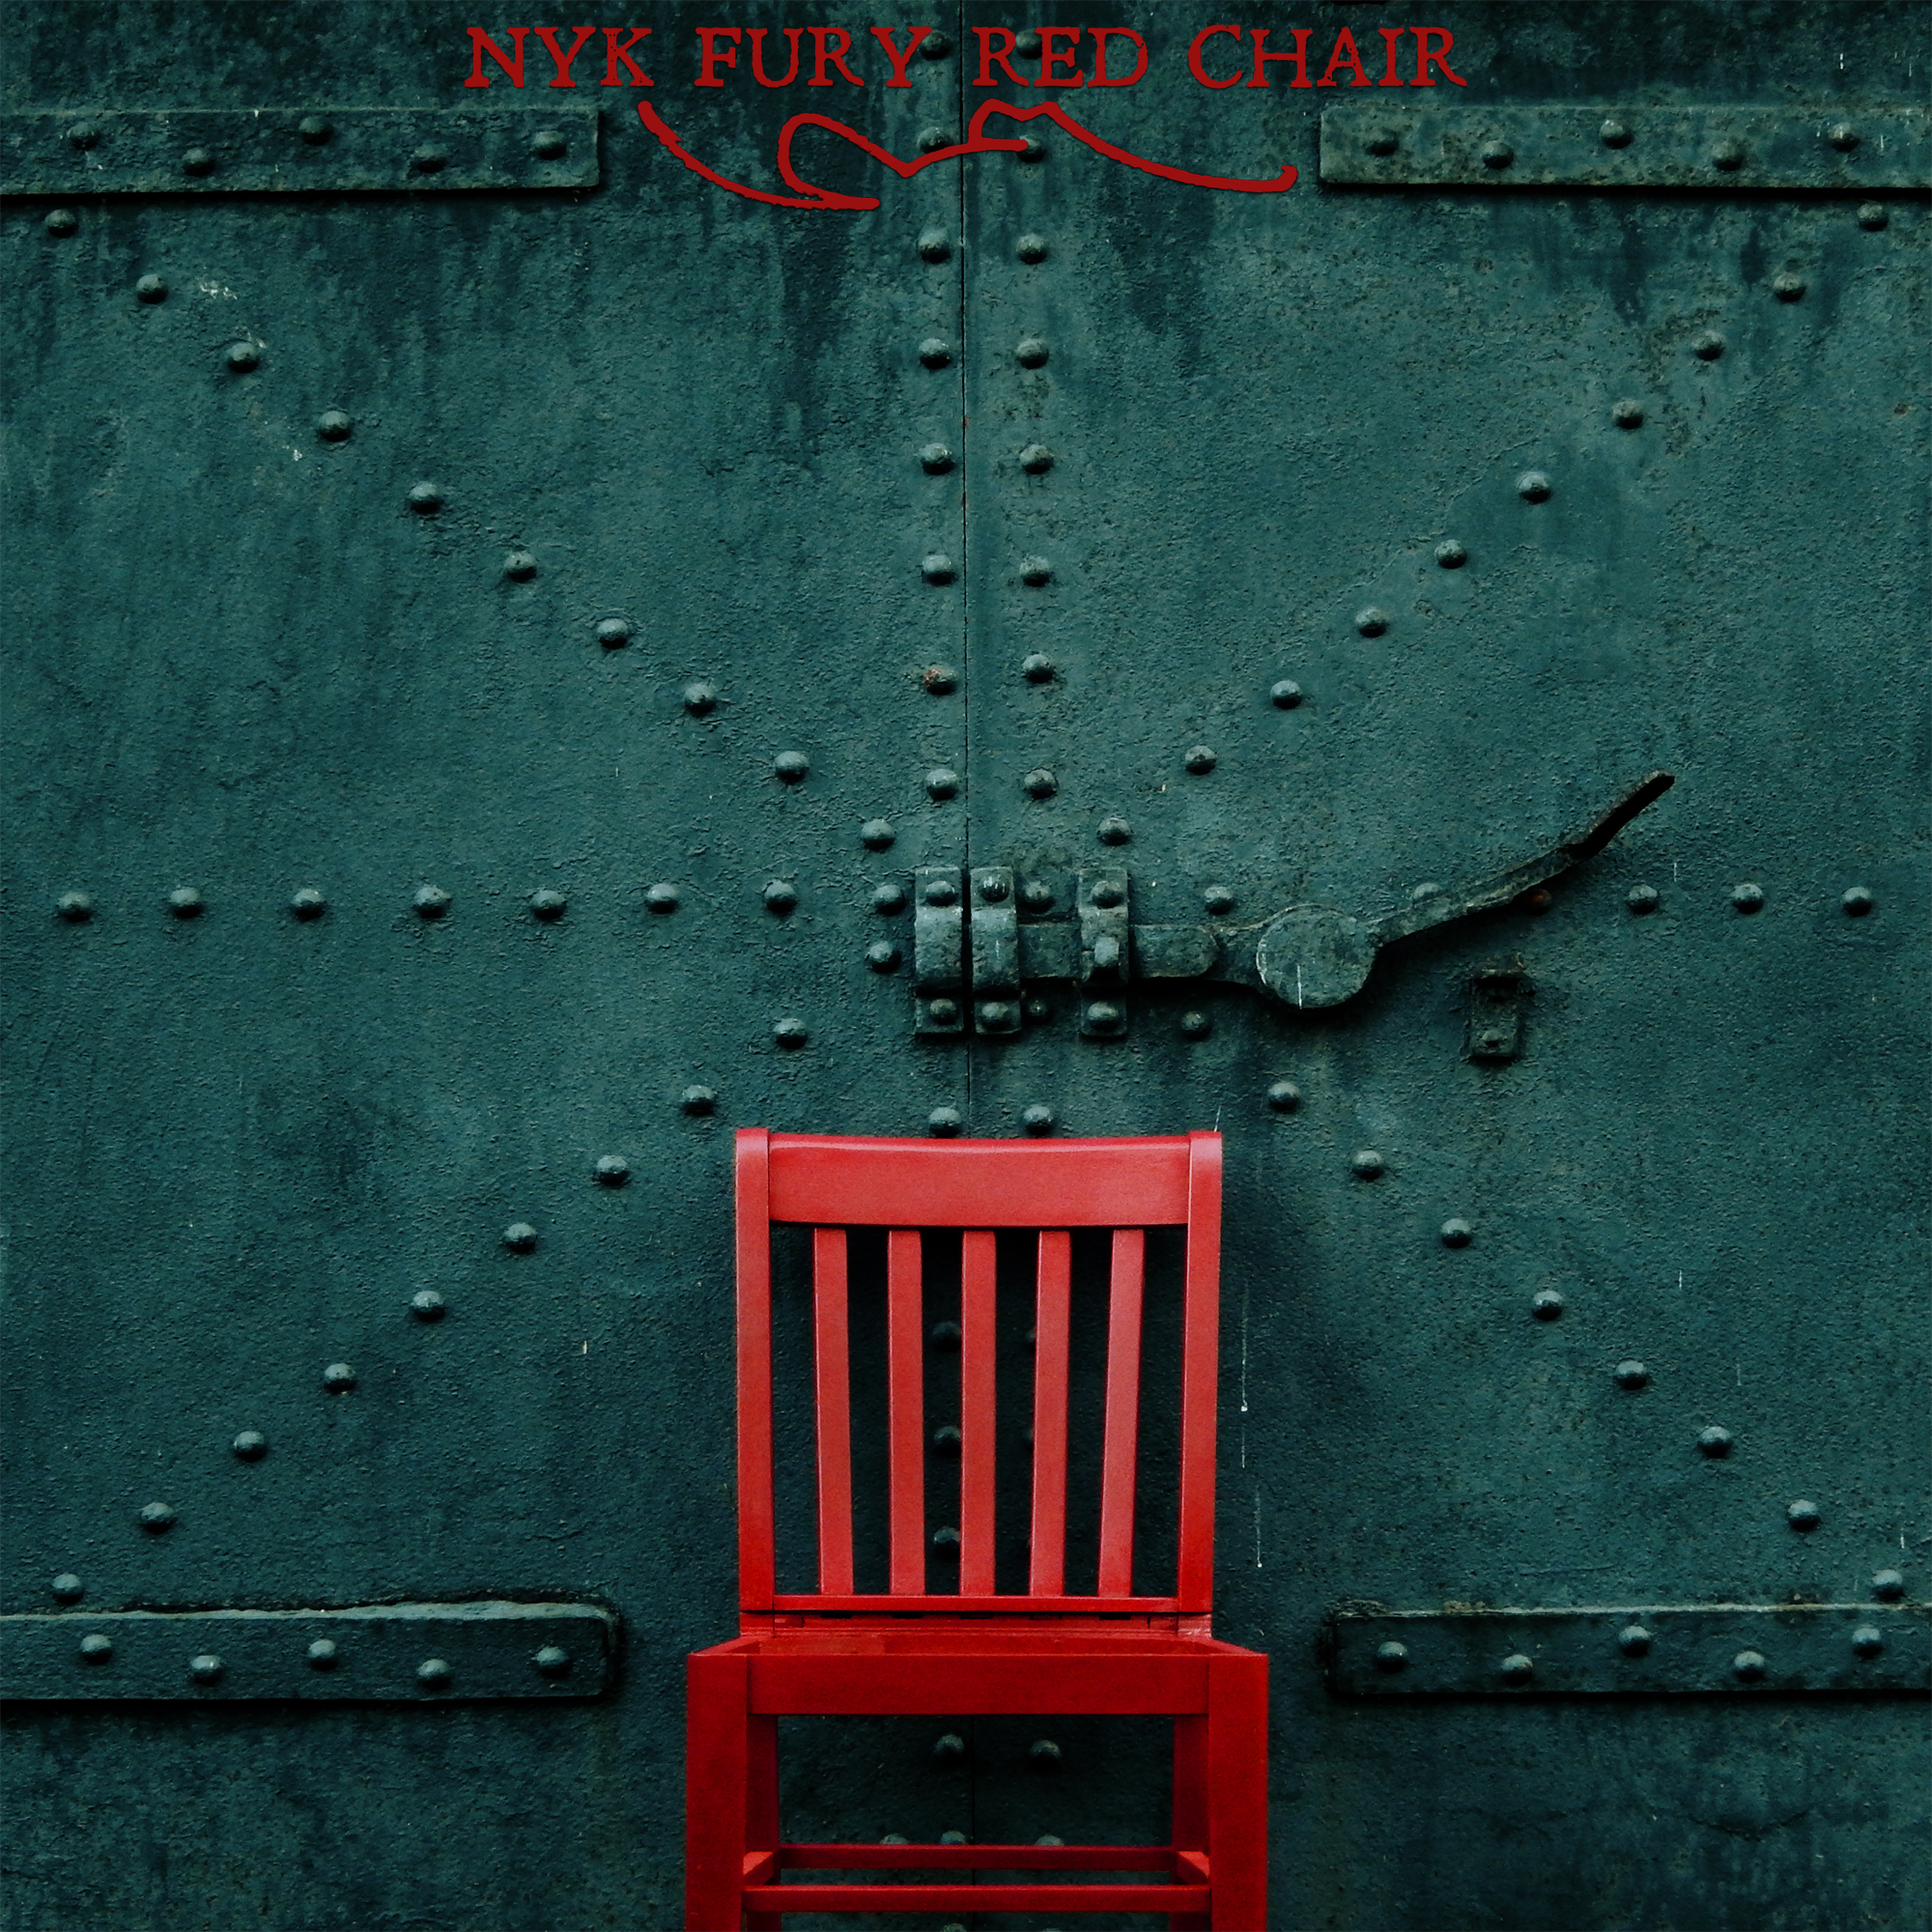 Red chair photography - Red Chair Asterisk By Kannagara Red Chair Asterisk By Kannagara